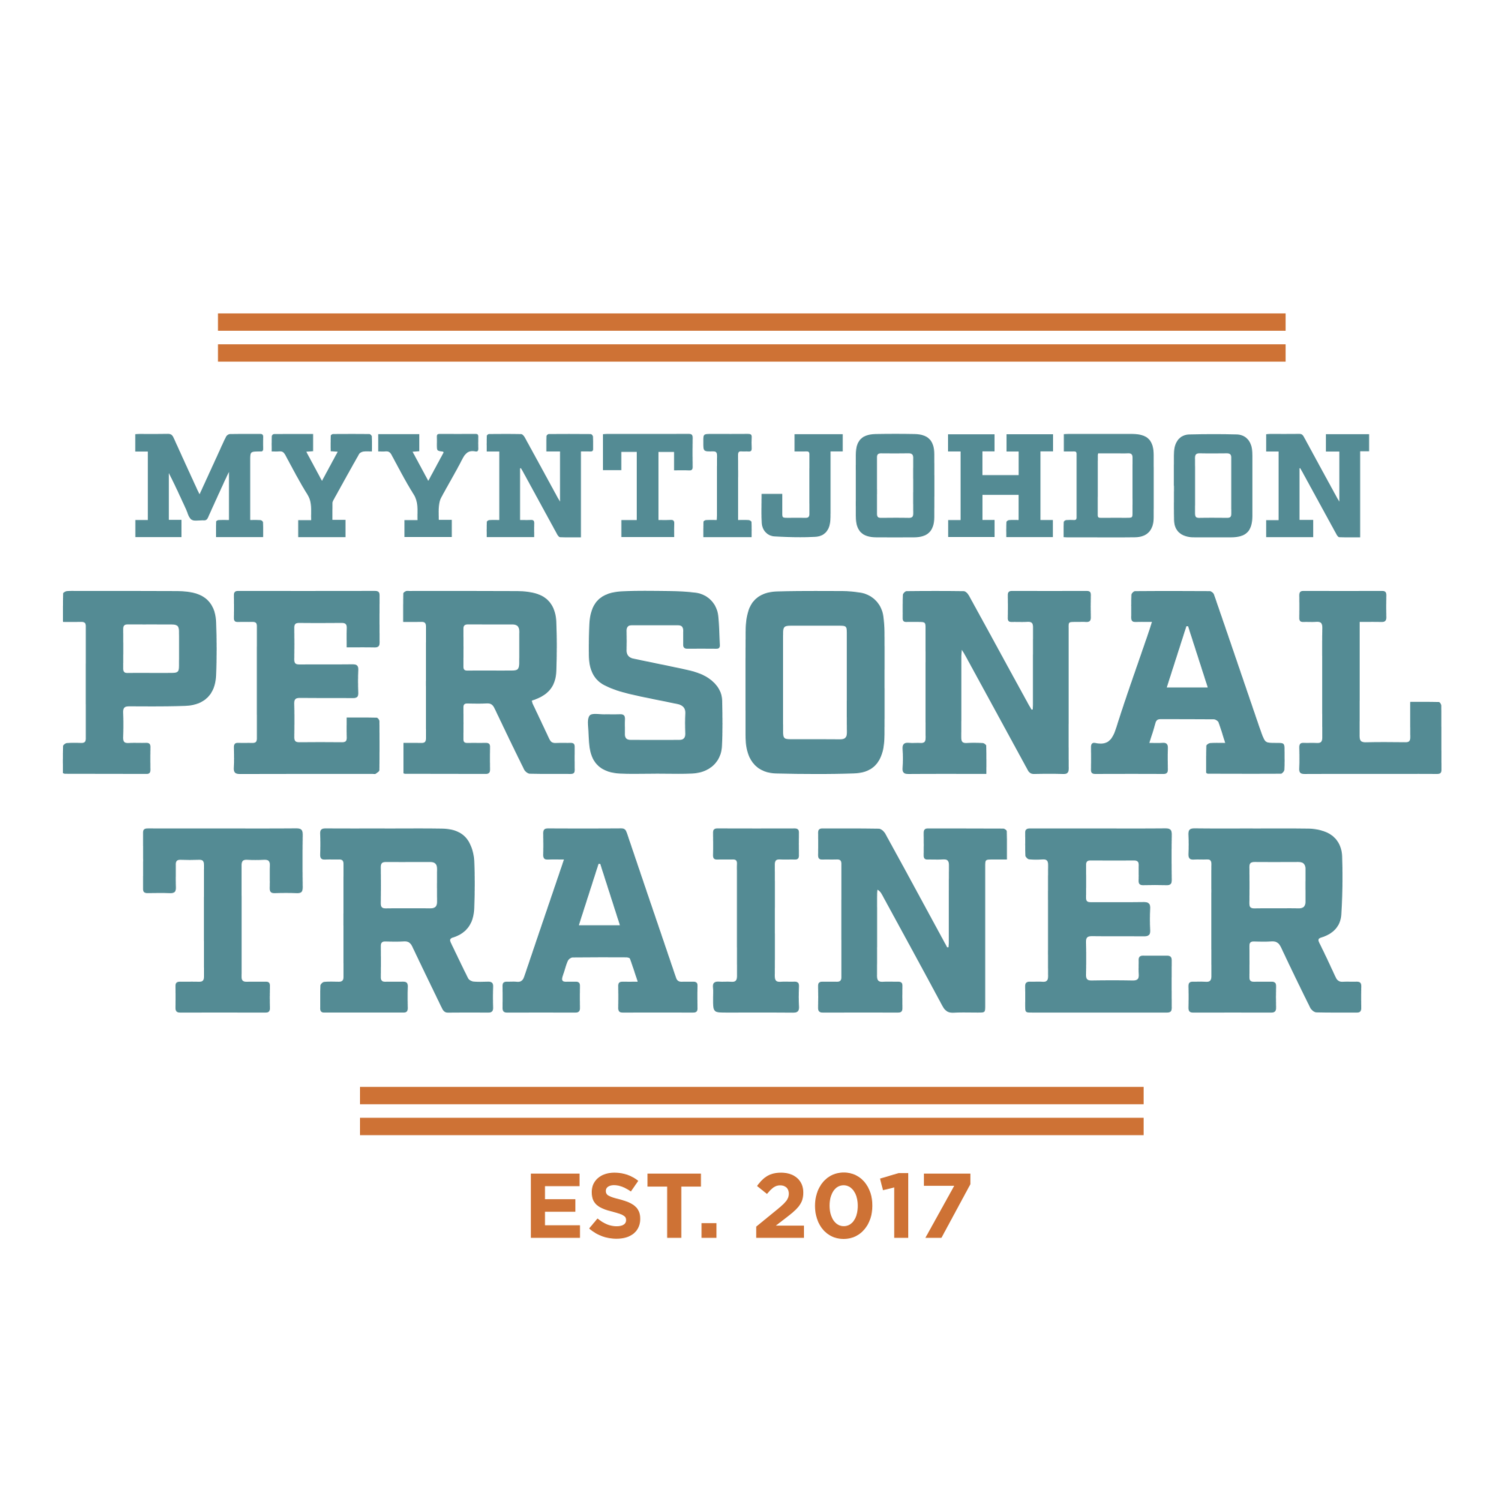 MYYNTIJOHDON PERSONAL TRAINER